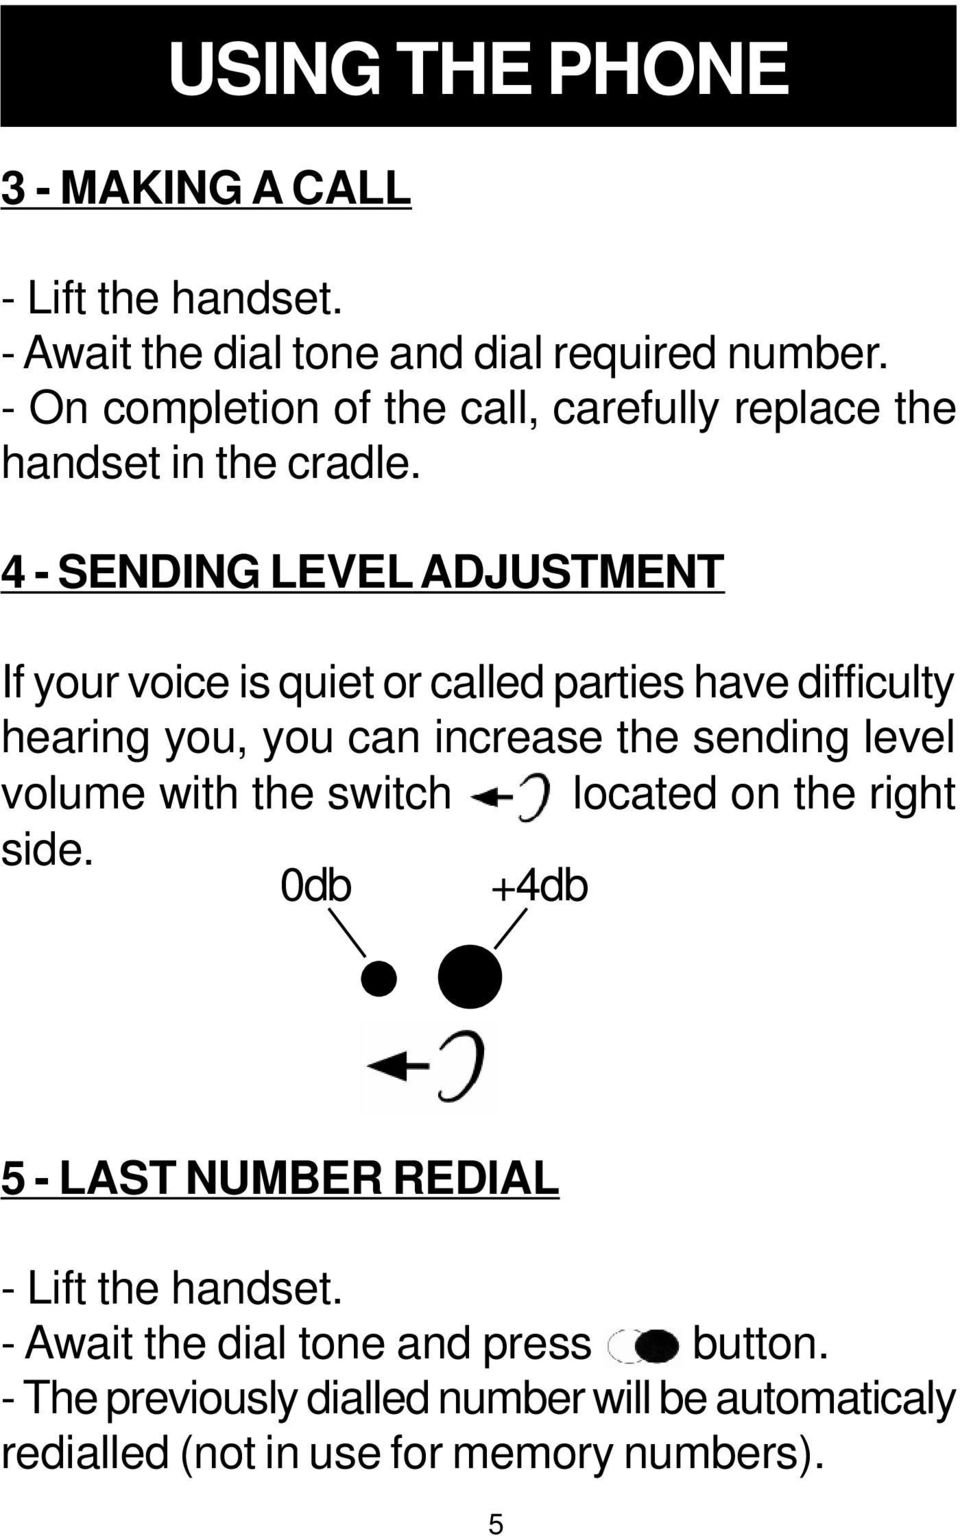 4 - SENDING LEVEL ADJUSTMENT If your voice is quiet or called parties have difficulty hearing you, you can increase the sending level